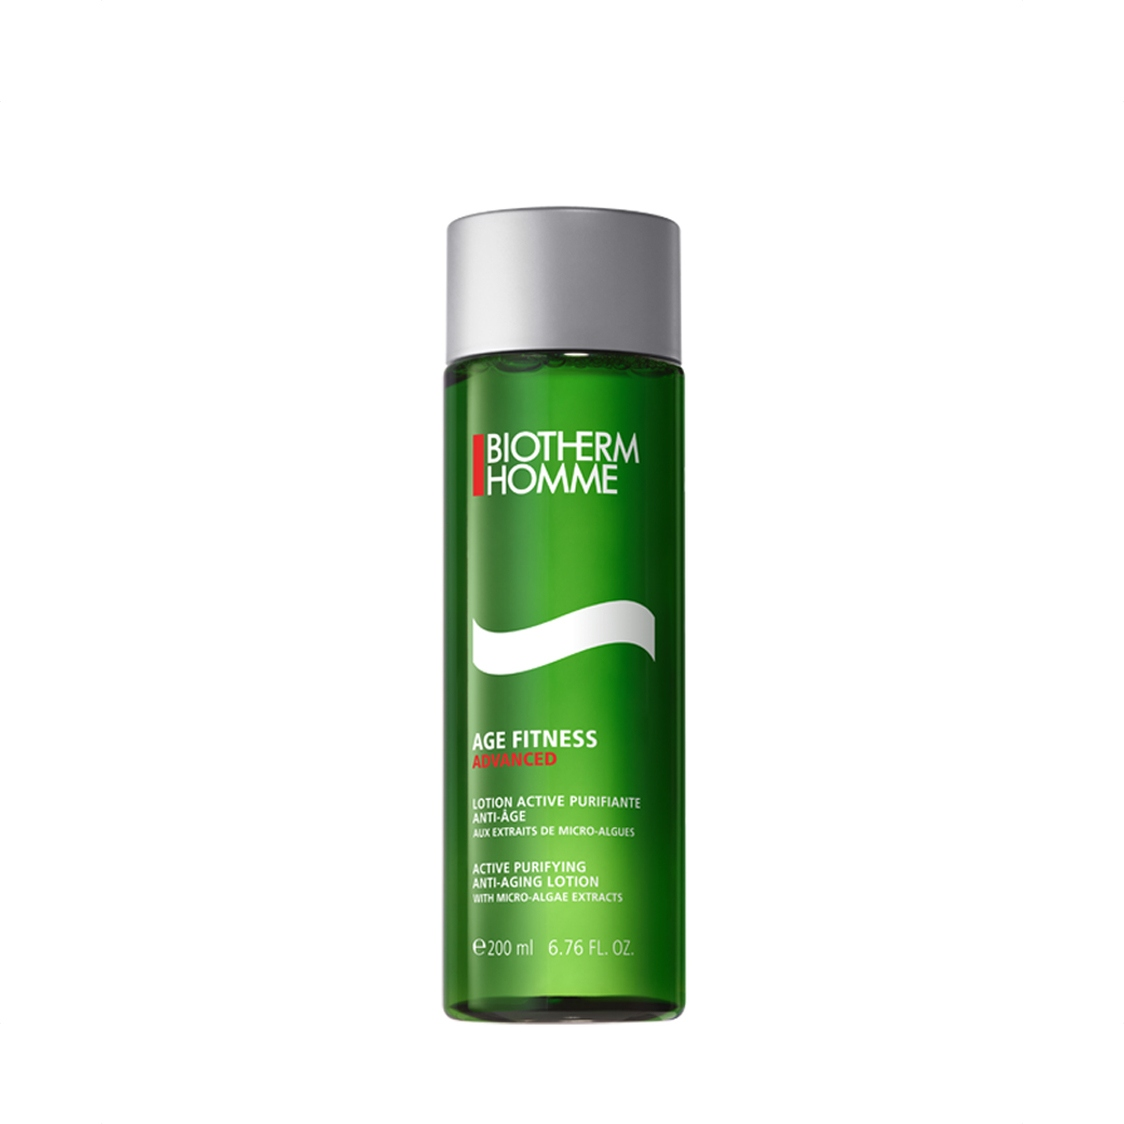 Age Fitness Advanced Lotion 200ml